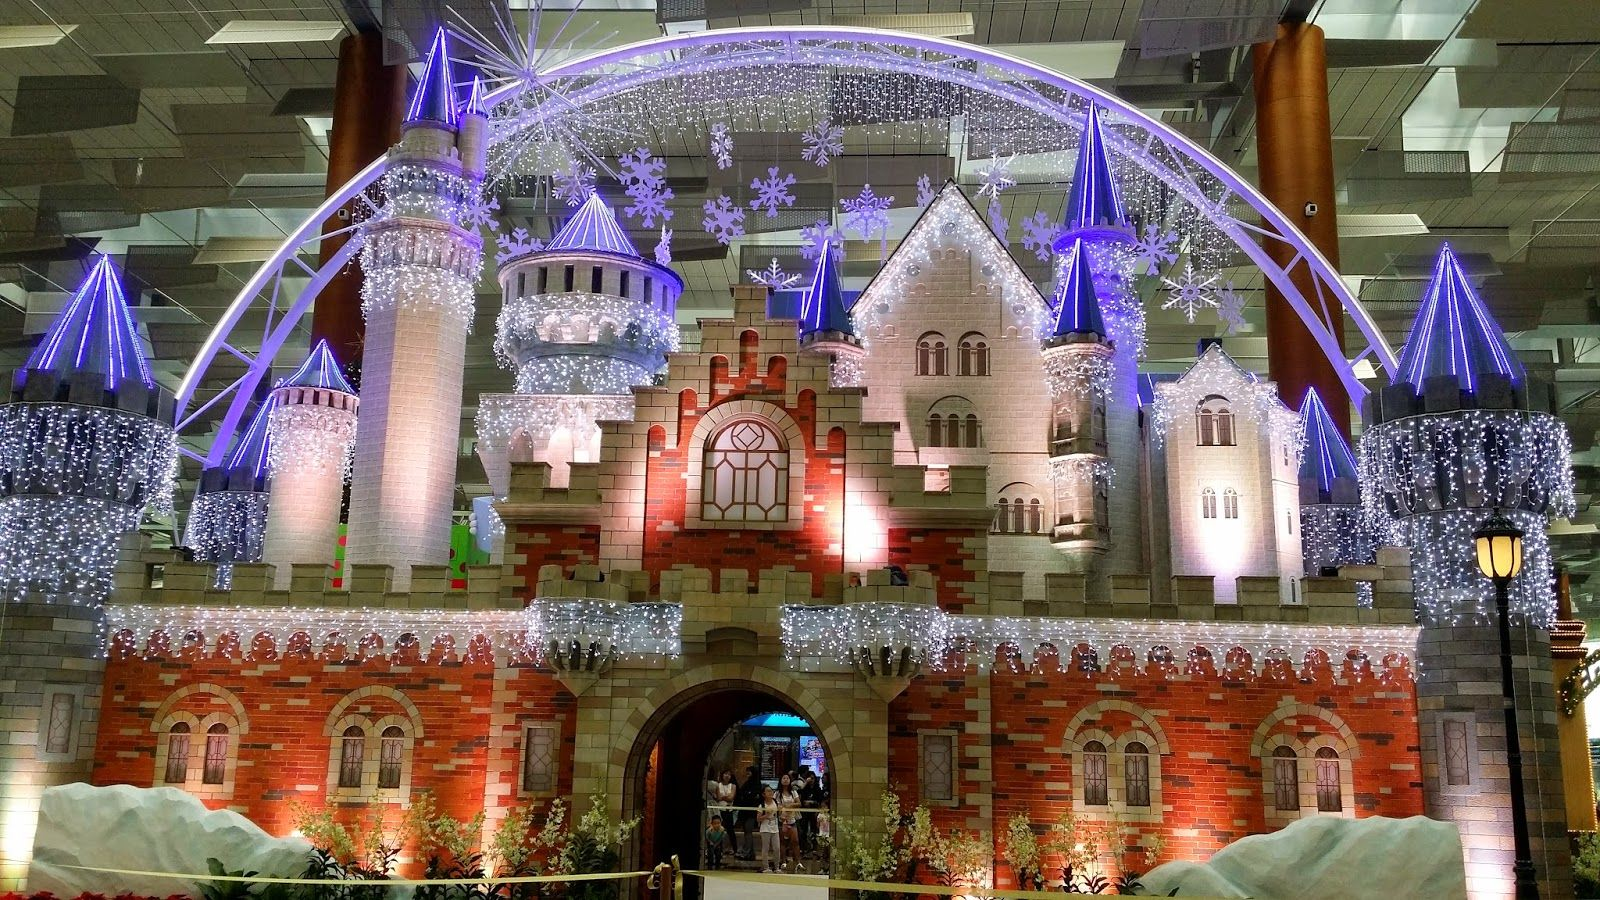 My Journey With My Lilbookworm Media Invite Disney Magic Winter Wonderland In Changi Airport Disney Magic Winter Wonderland Disney